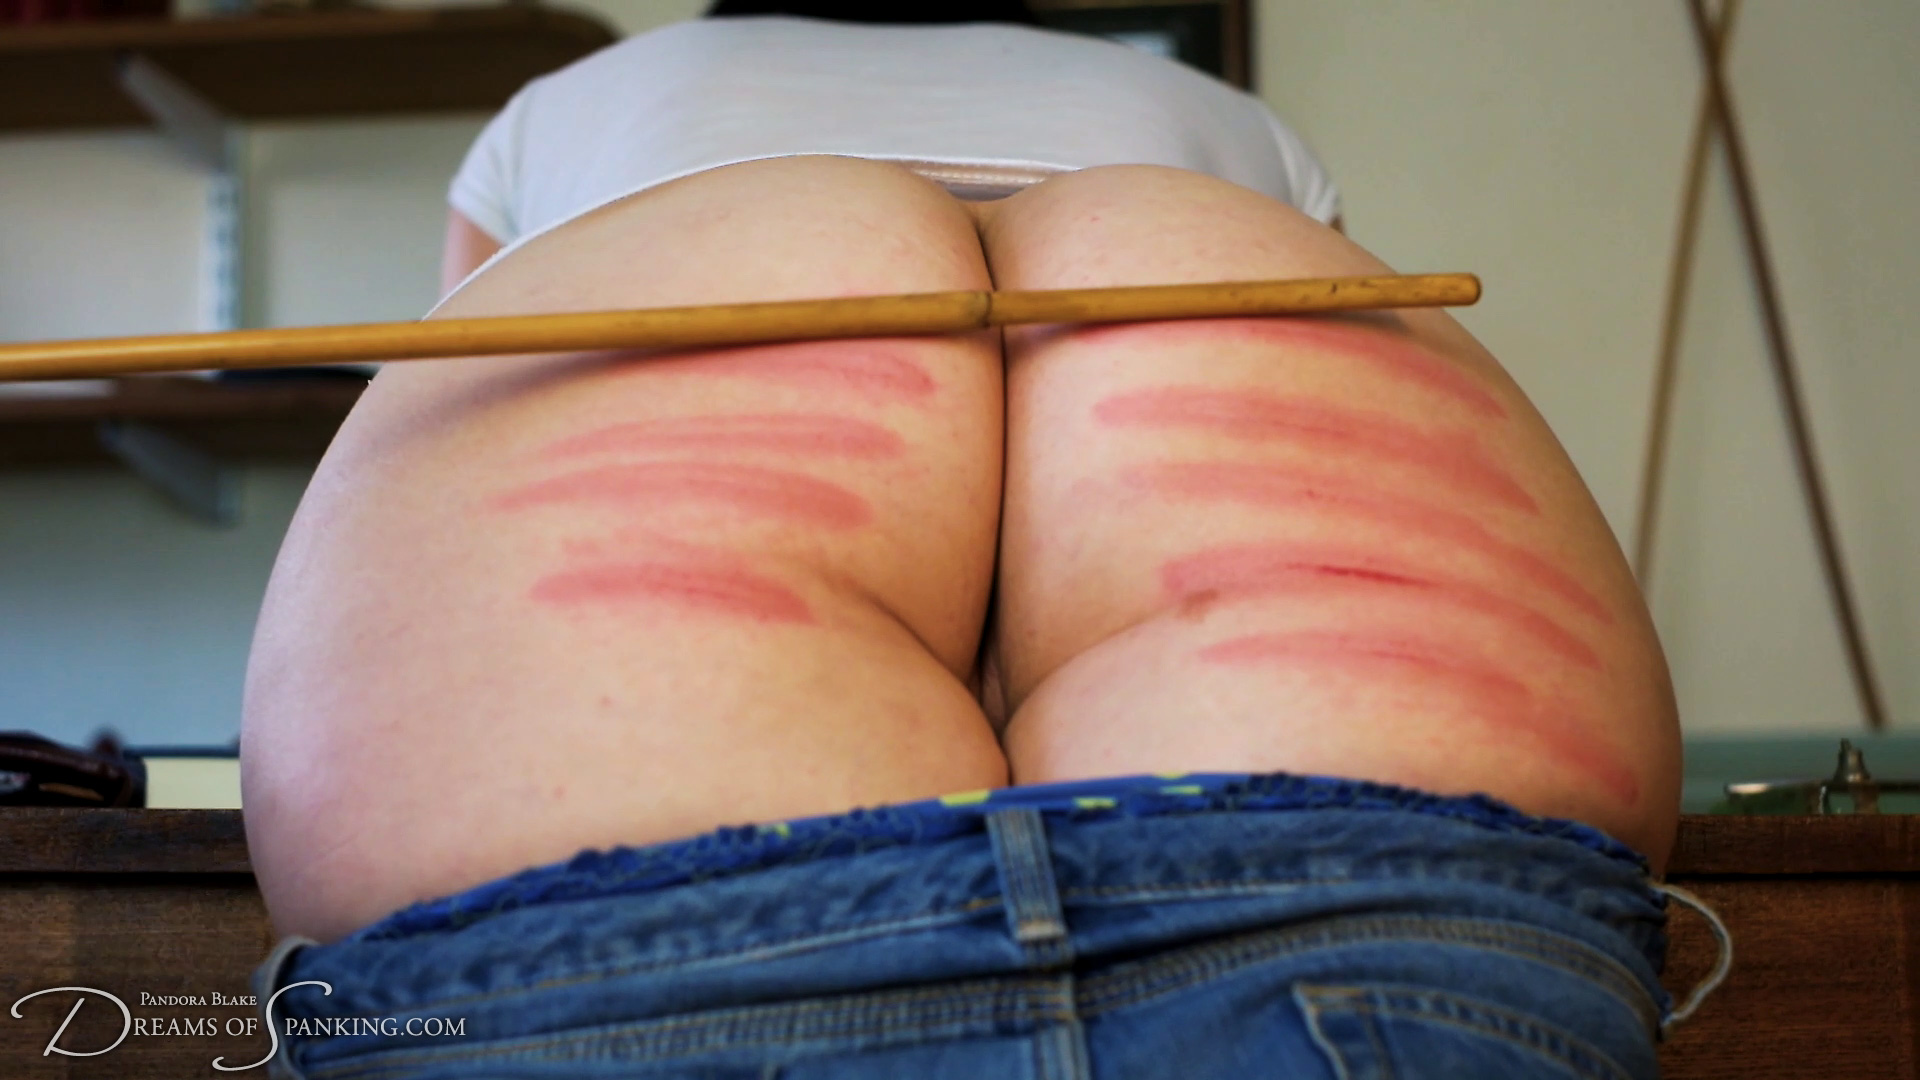 Pandora Blake caned at Dreams of Spanking